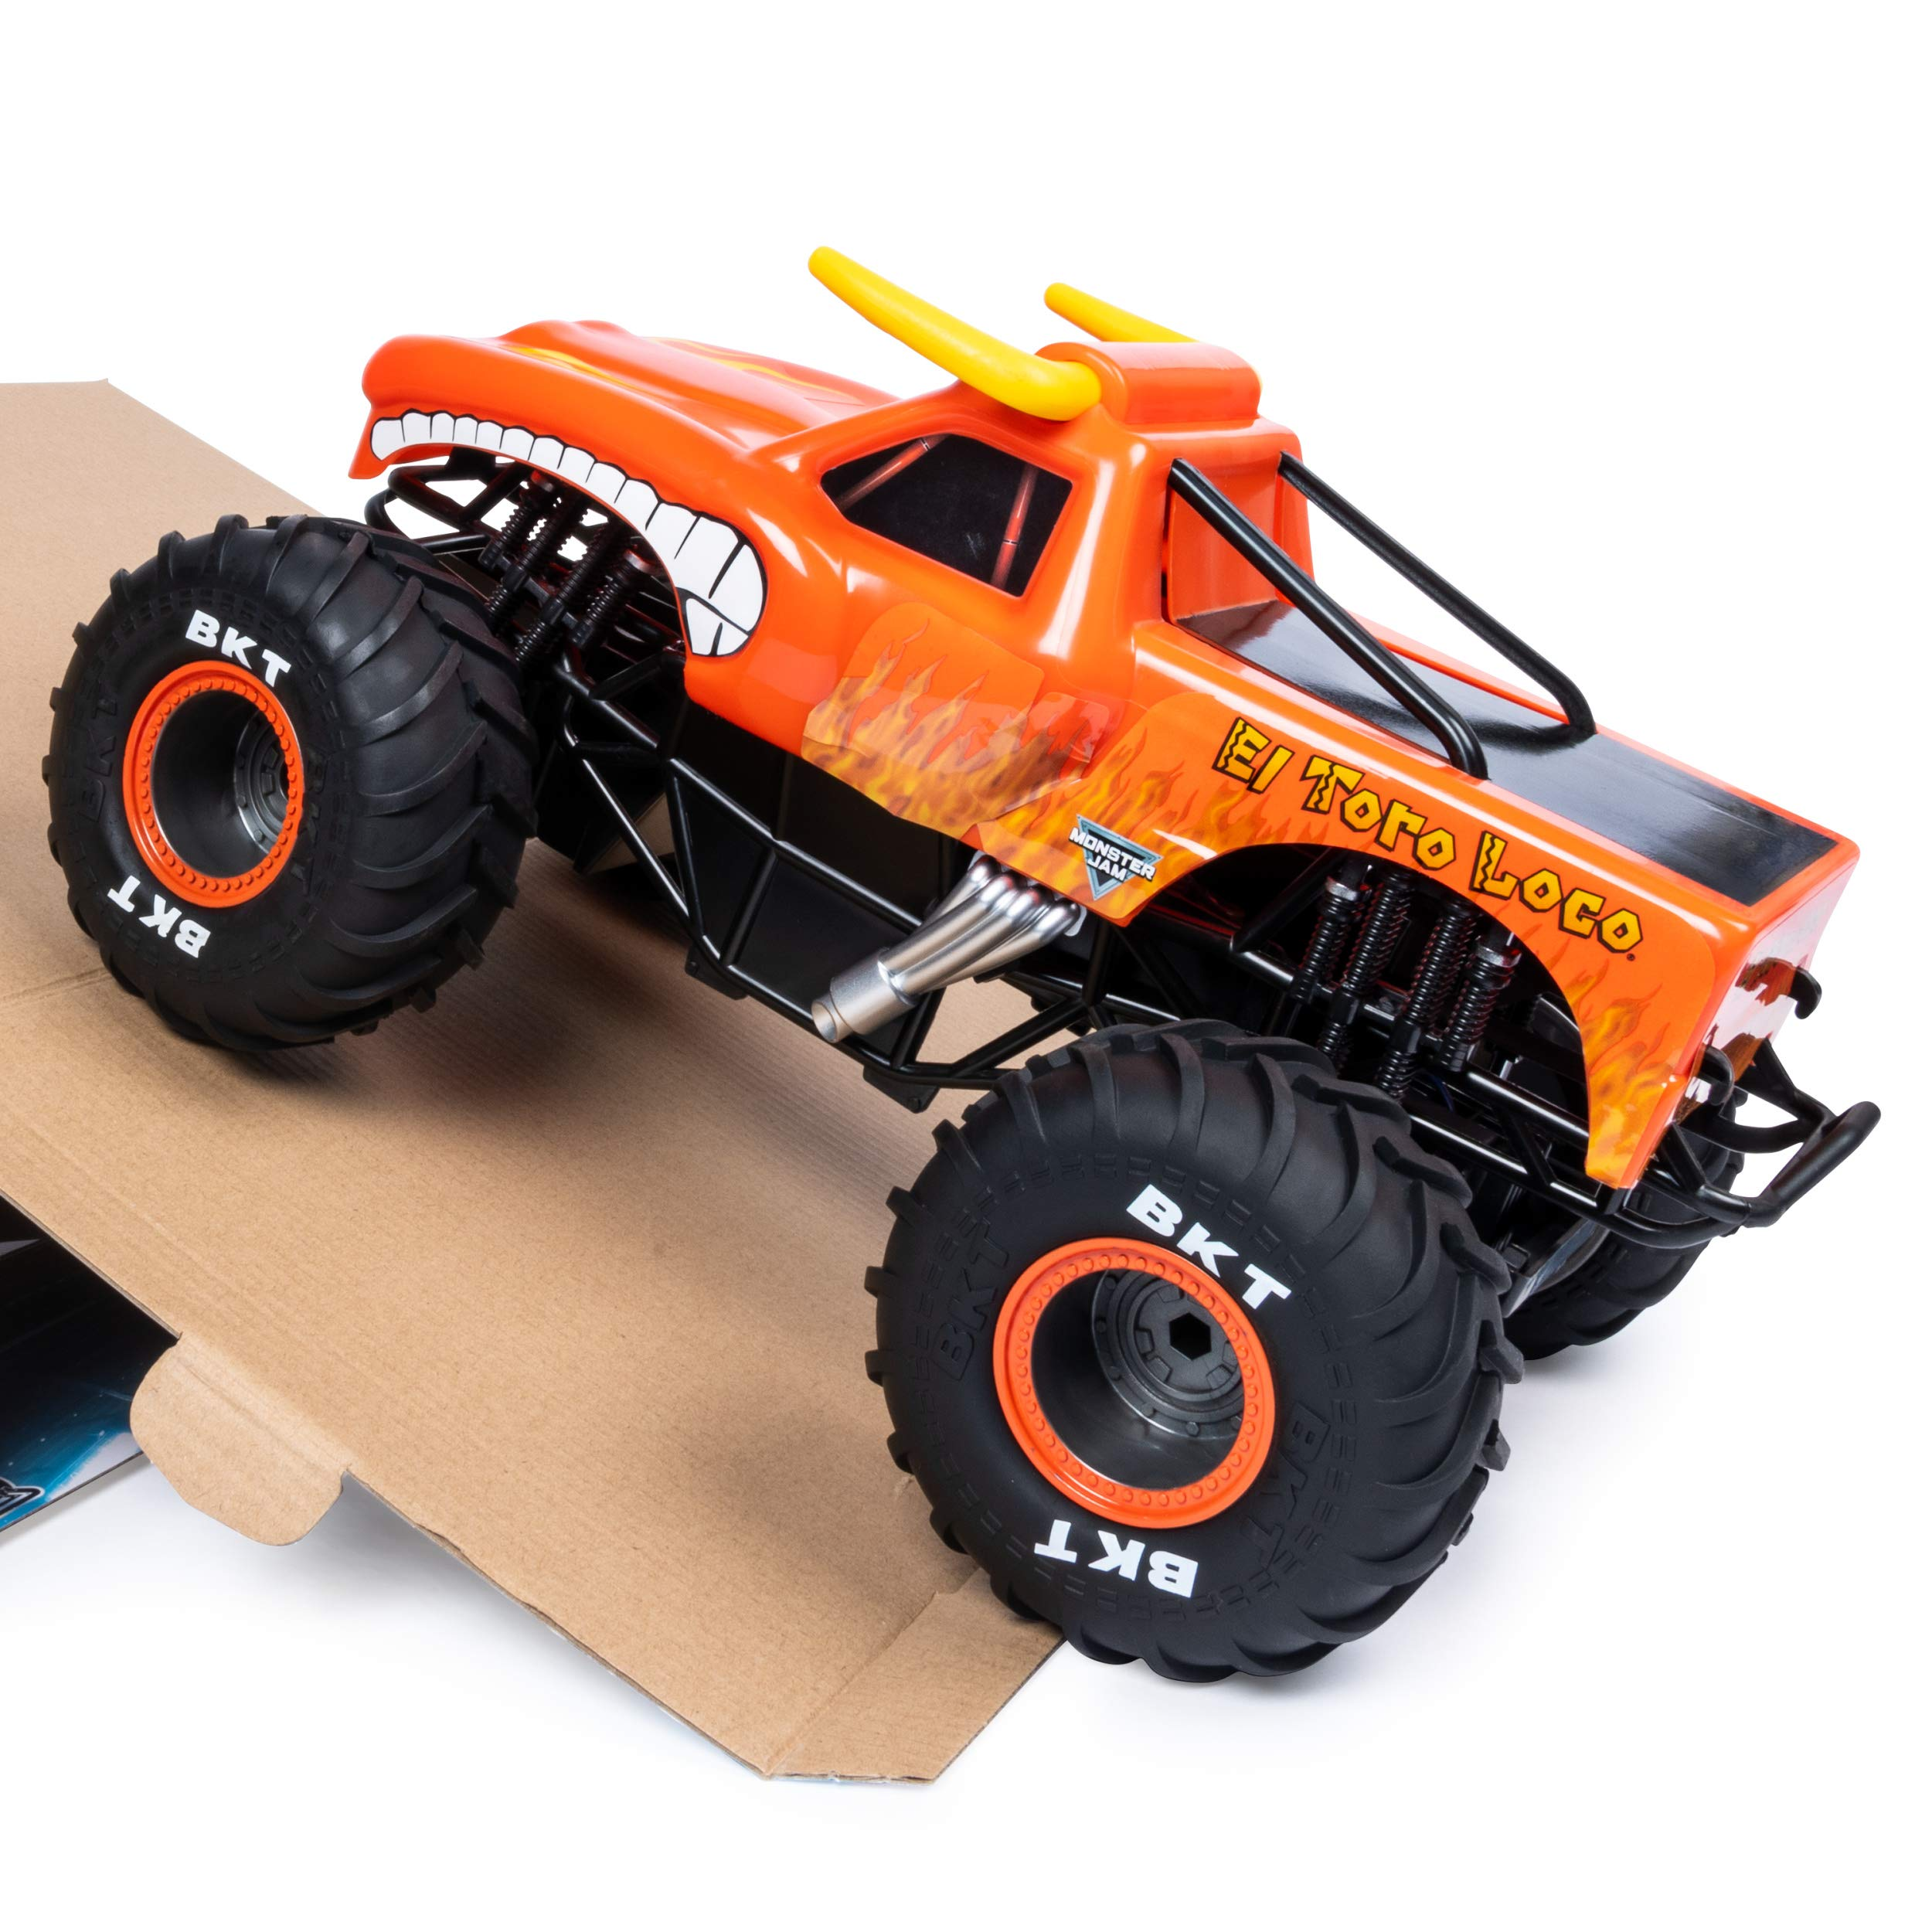 Monster Jam Official El Toro Loco Remote Control Monster Truck, 1:15 Scale, 2.4 GHz by Monster Jam (Image #5)